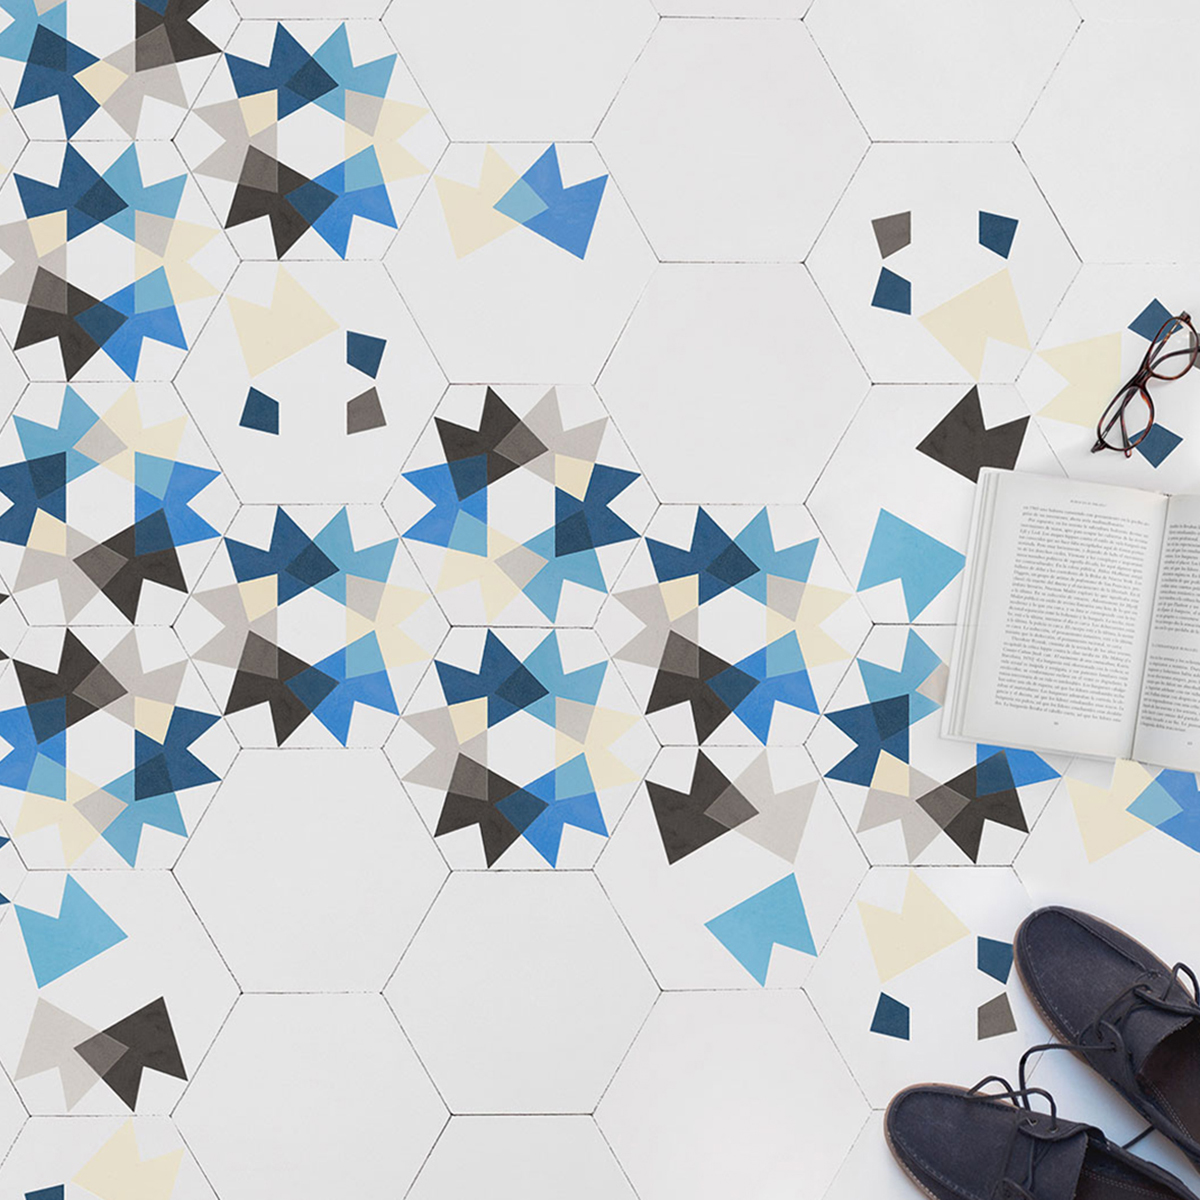 Interior Designer Sophie Robinson chooses favourite encaustic cement tiles Maitland&Poate hexagonal blue floor